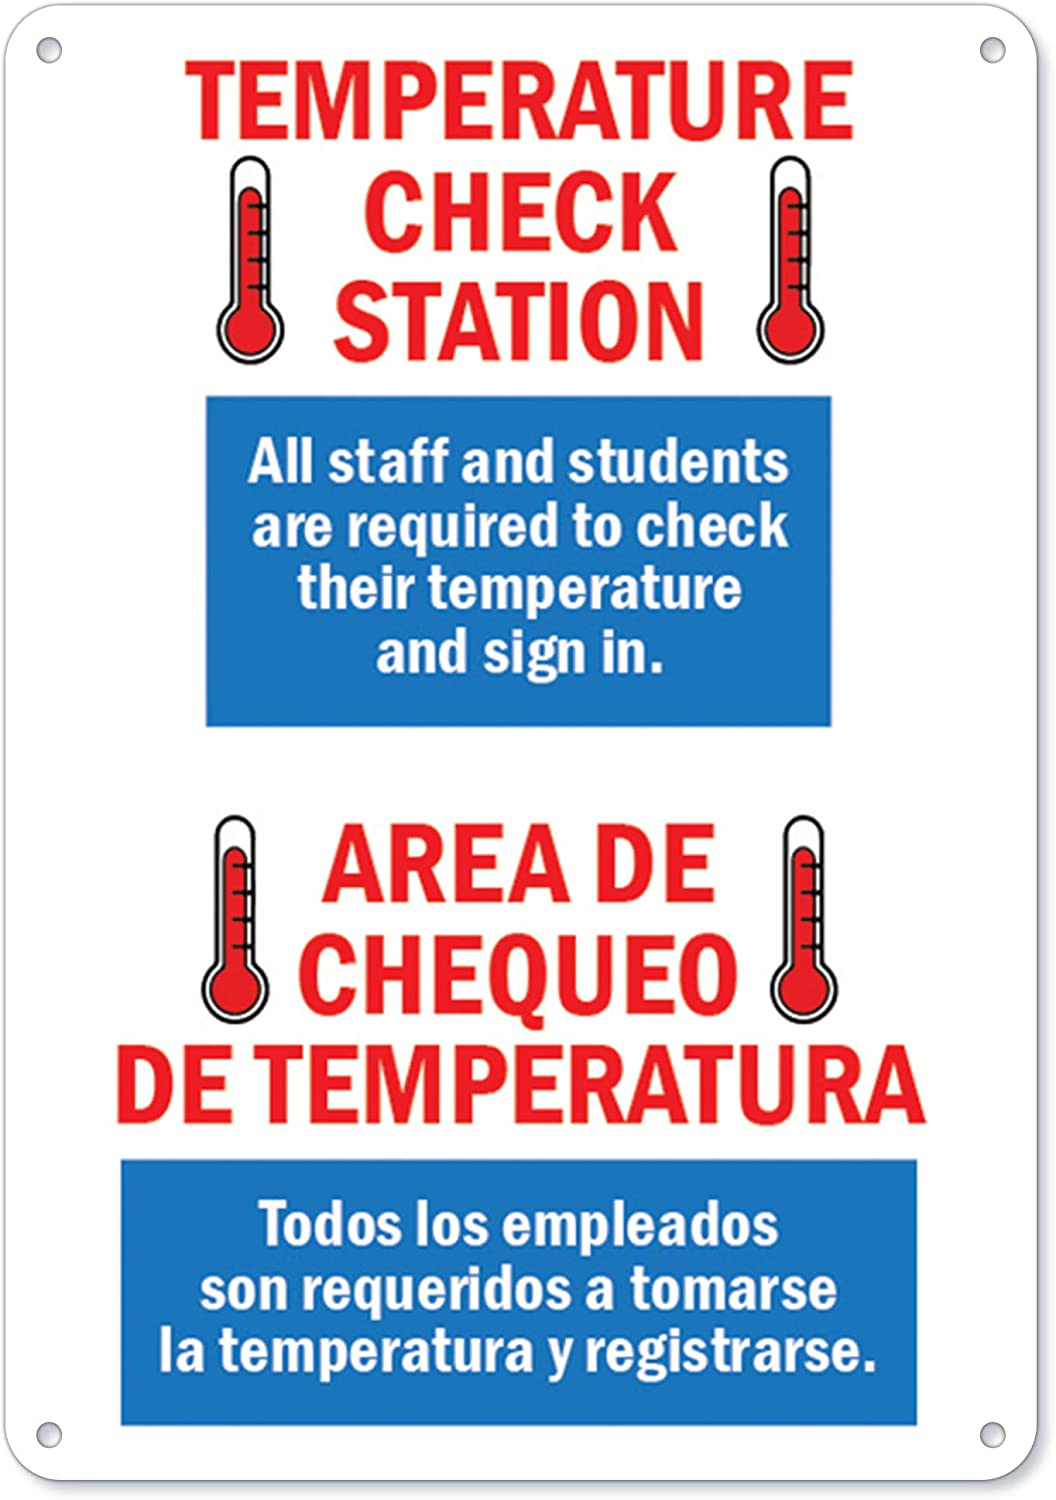 COVID-19 Notice Sign - Temperature Check Station Spanish   Plastic Sign   Protect Your Business, Municipality, Home & Colleagues   Made in The USA